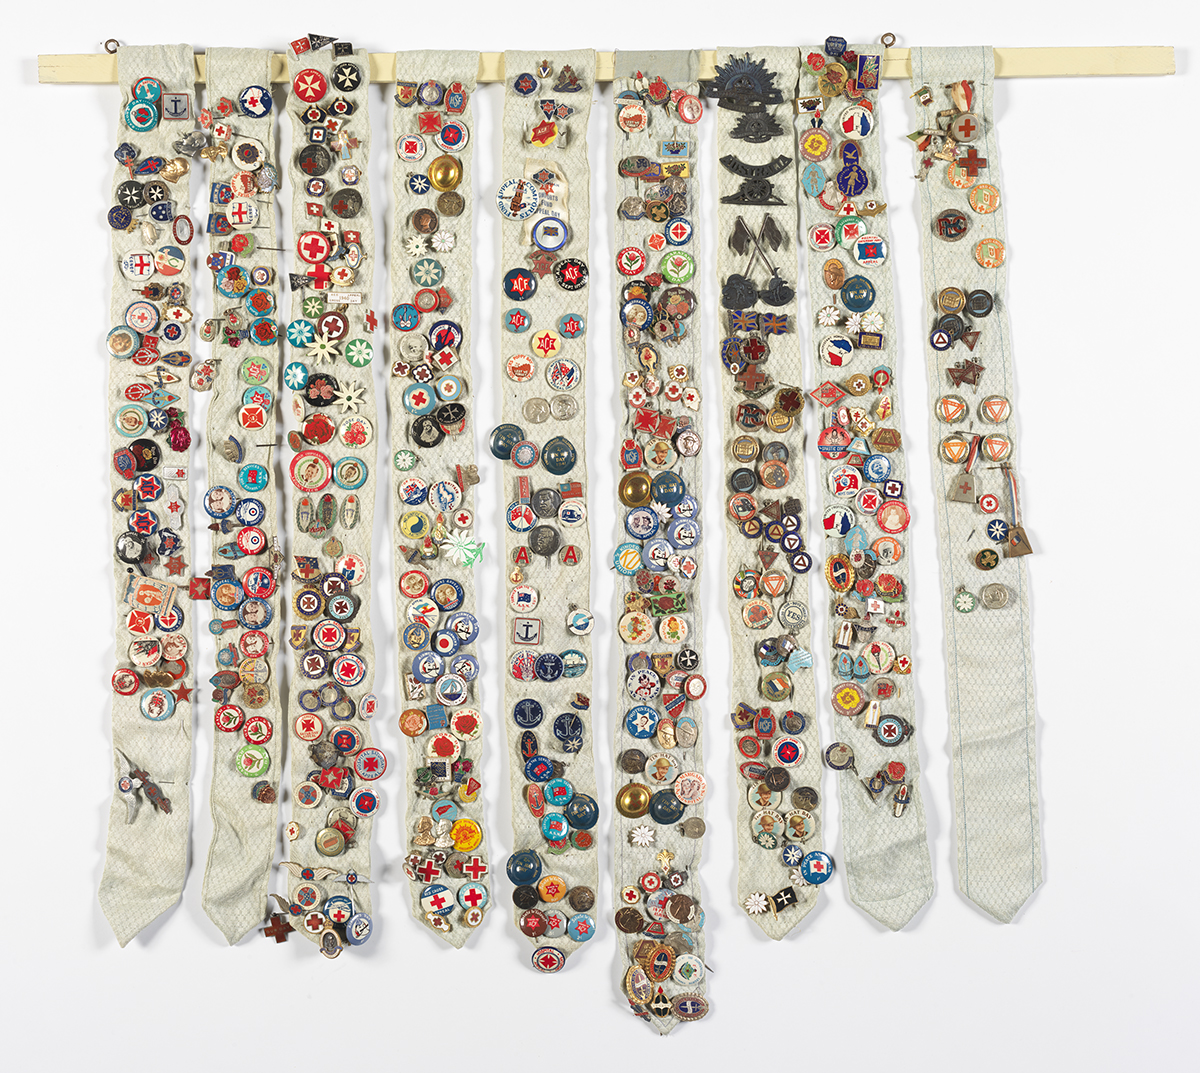 Photograph of 9 long strips of fabric holding hundreds of colourful badges.